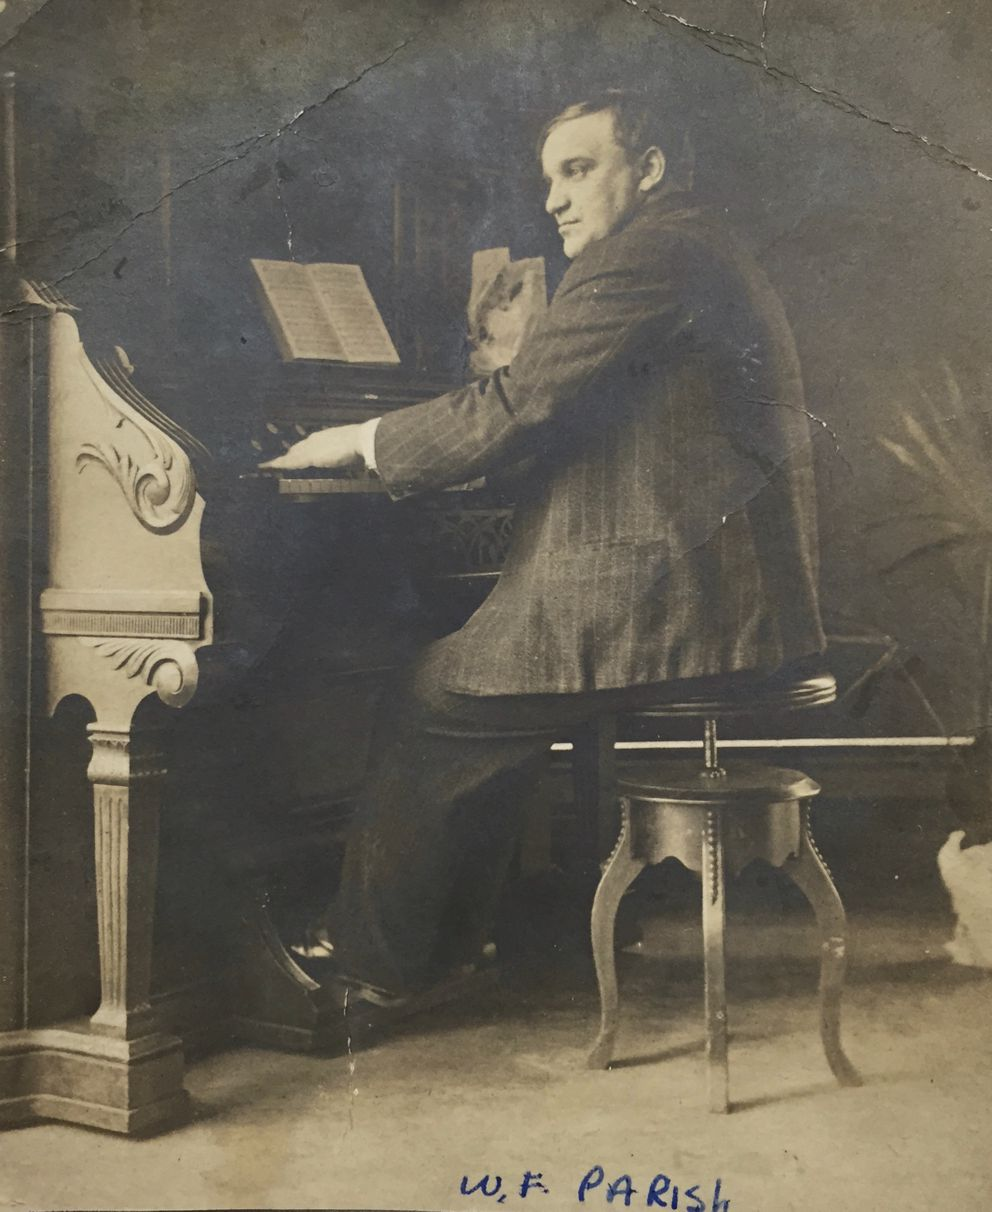 Professor William F. Parish, director of the Anchorage Choral Society, at the organ. He was hired by the Anchorage School in the fall of 1920. Professor Parish elevated music and the dramatic arts in the curriculum. (Photo courtesy of Christine Ashenbrenner. Parish was Ashenbrenner's great-grandfather.)